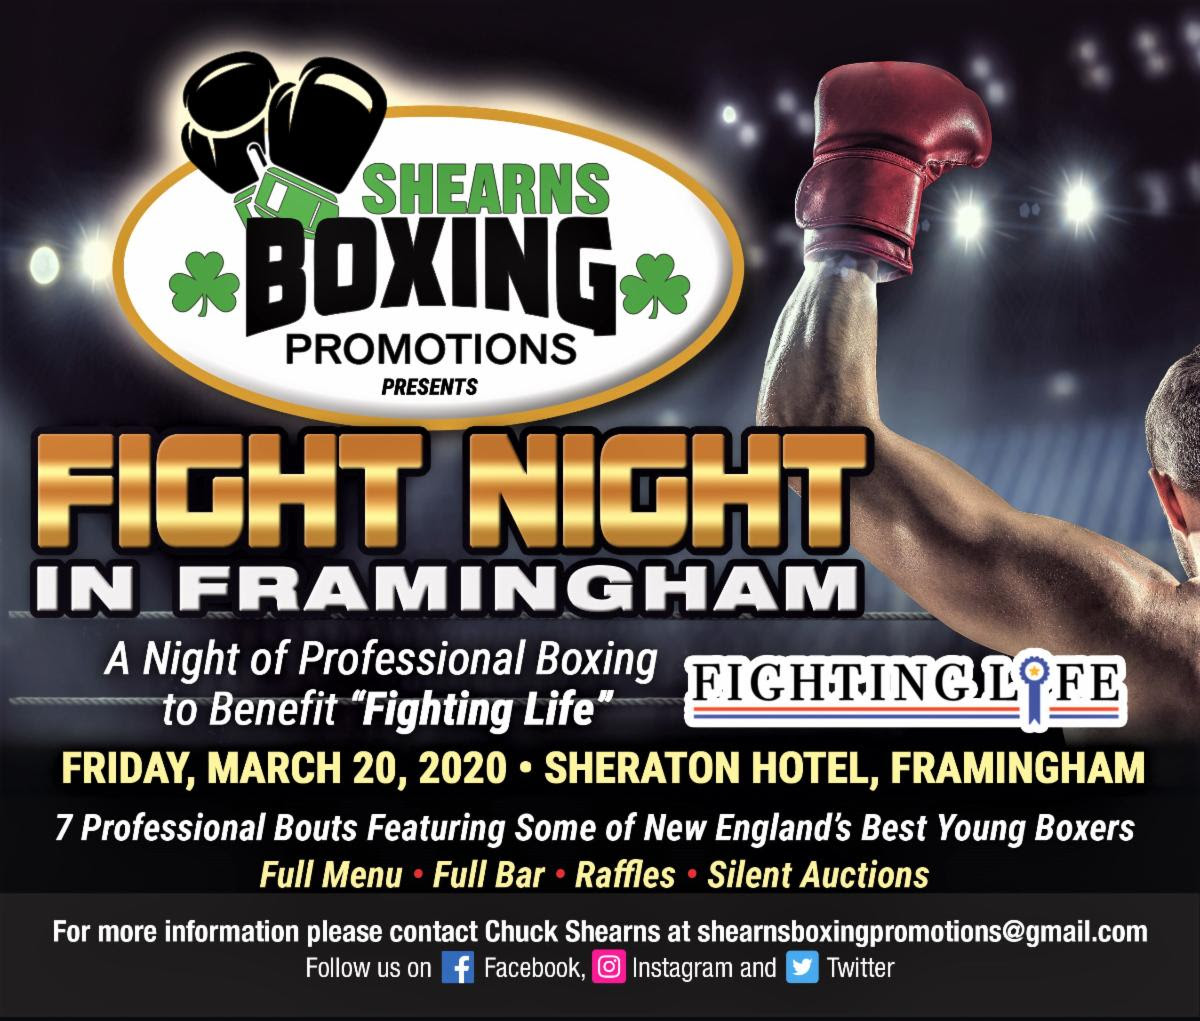 """MMA fighter Kastriot """"Slaughterhouse"""" Xhema to make pro boxing debut Mar. 20 on """"Fight Night In Framingham"""" card -"""